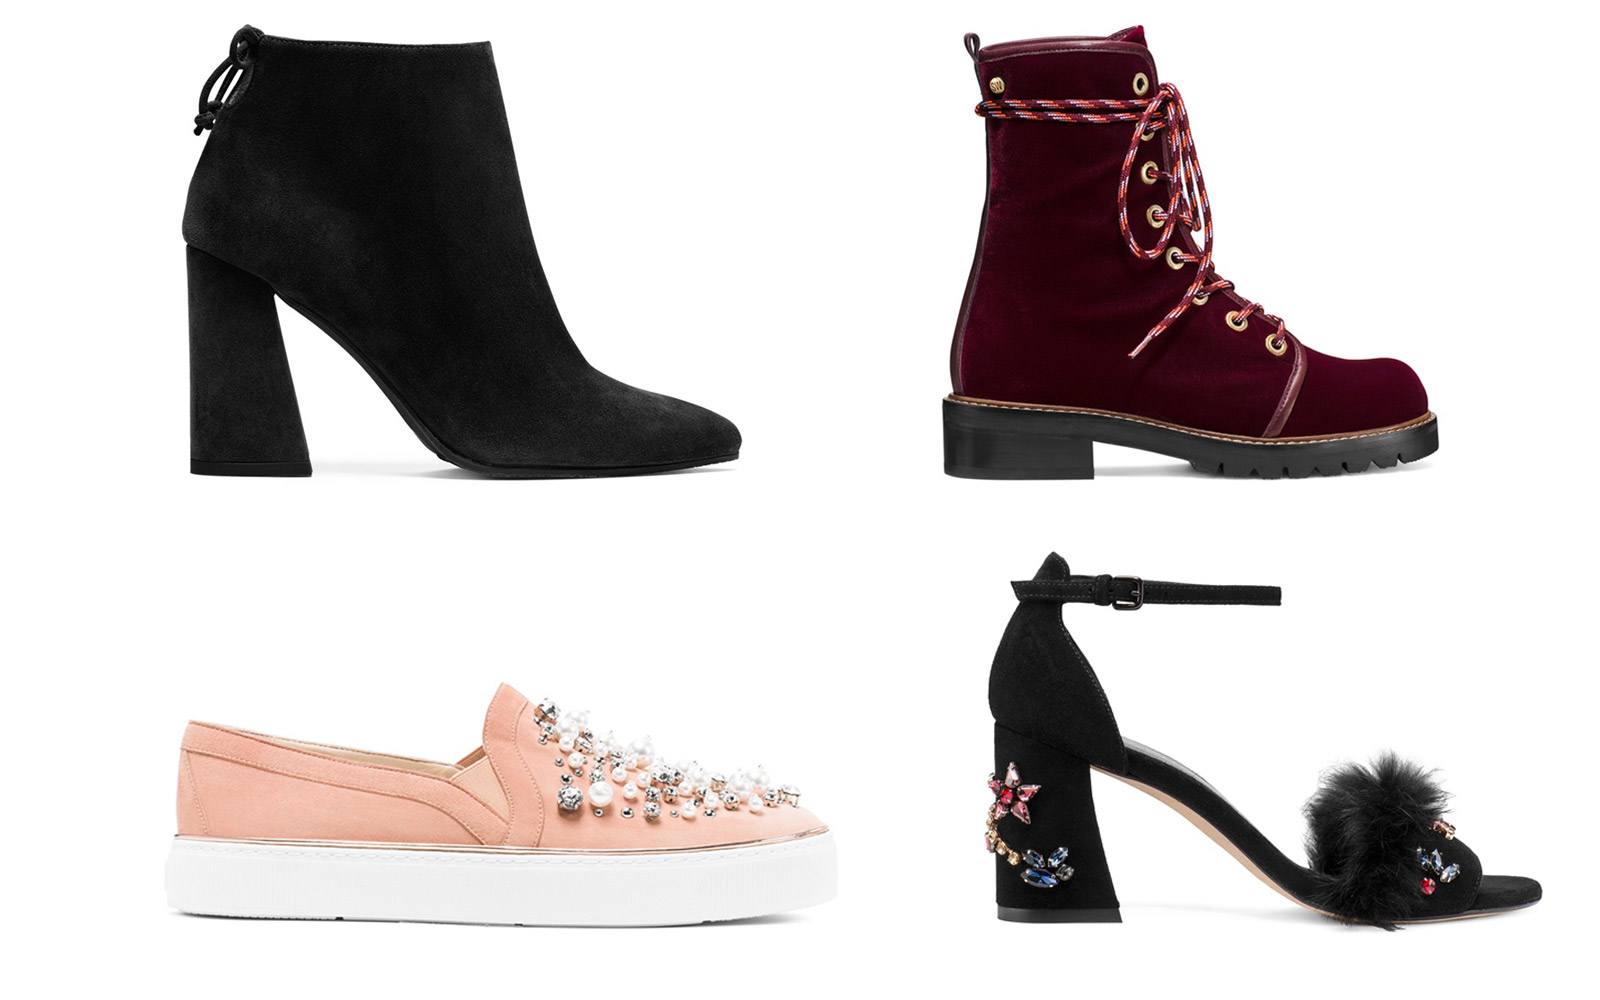 You Can Shop Some of Stuart Weitzman's Most Popular Shoes for Half Off Right Now